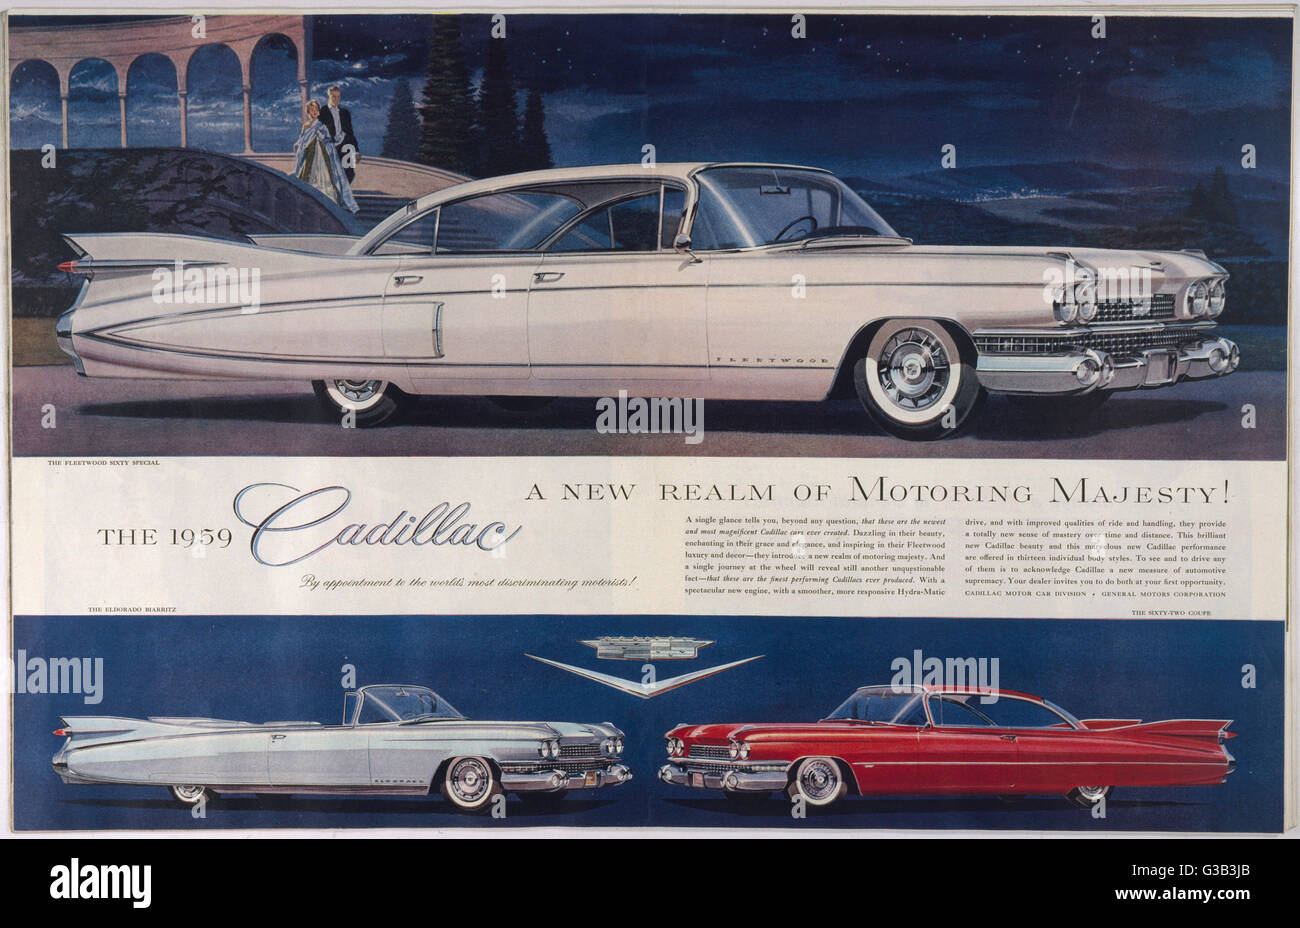 'A single glance tells you -  these are the newest and most  magnificent Cadillac cars ever  created.  Dazzling - Stock Image